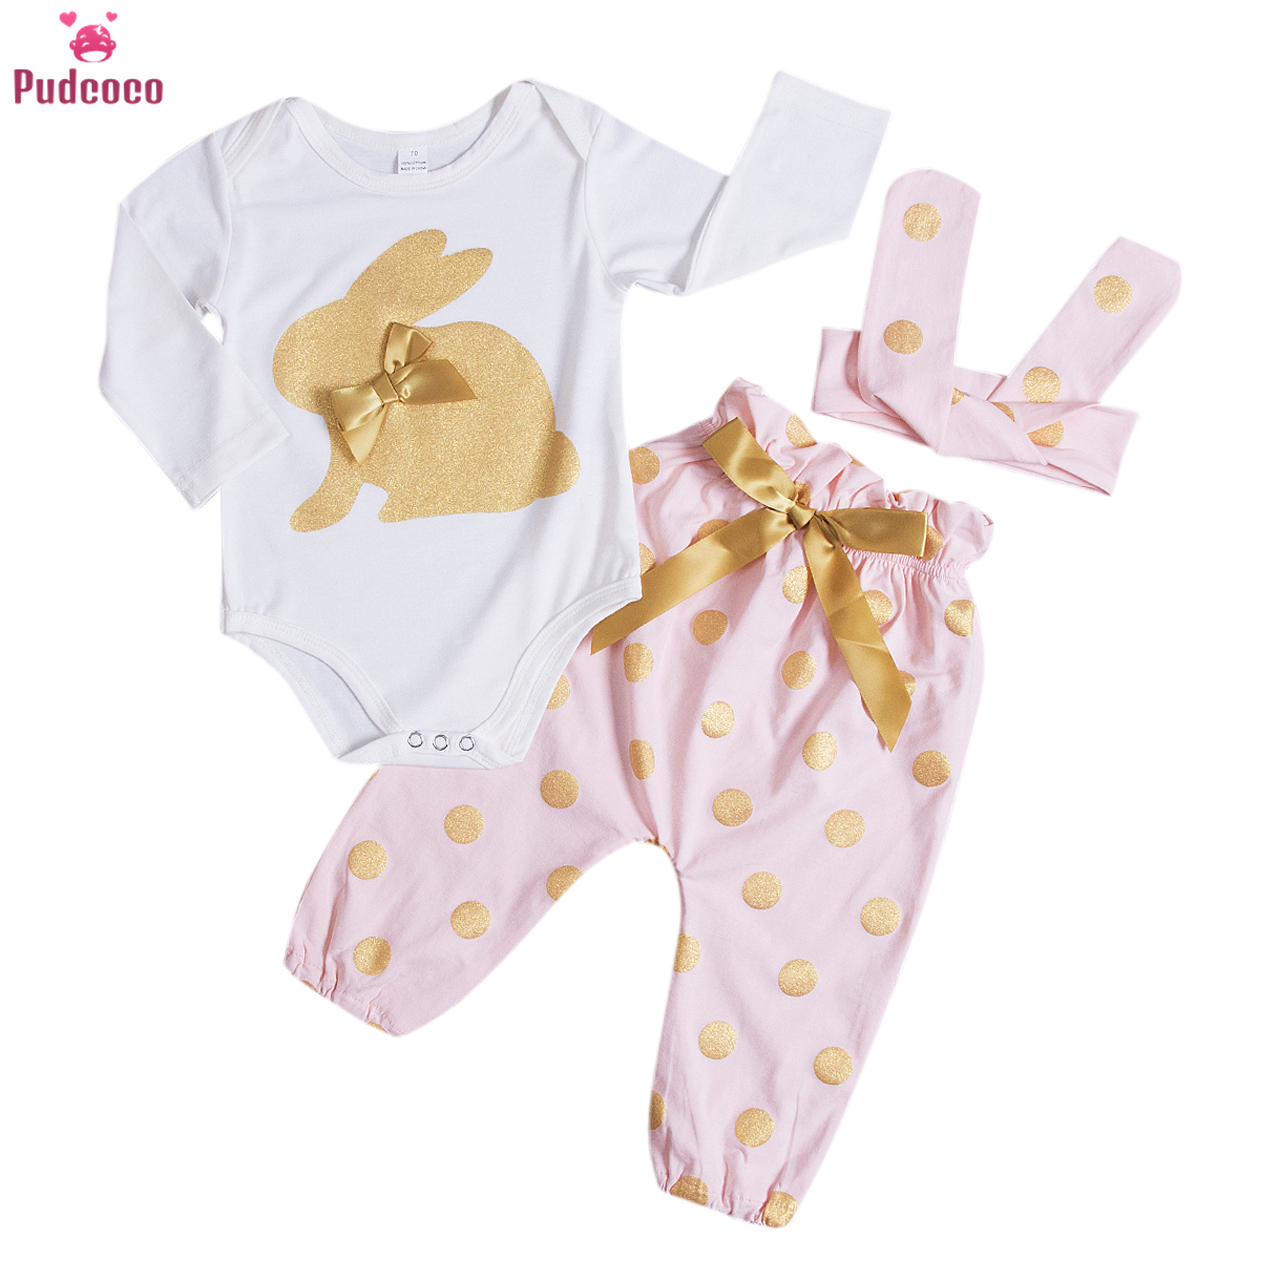 UK Stock Newborn Baby Boy Girl Cactus Romper Jumpsuit Playsuit Clothes Outfits